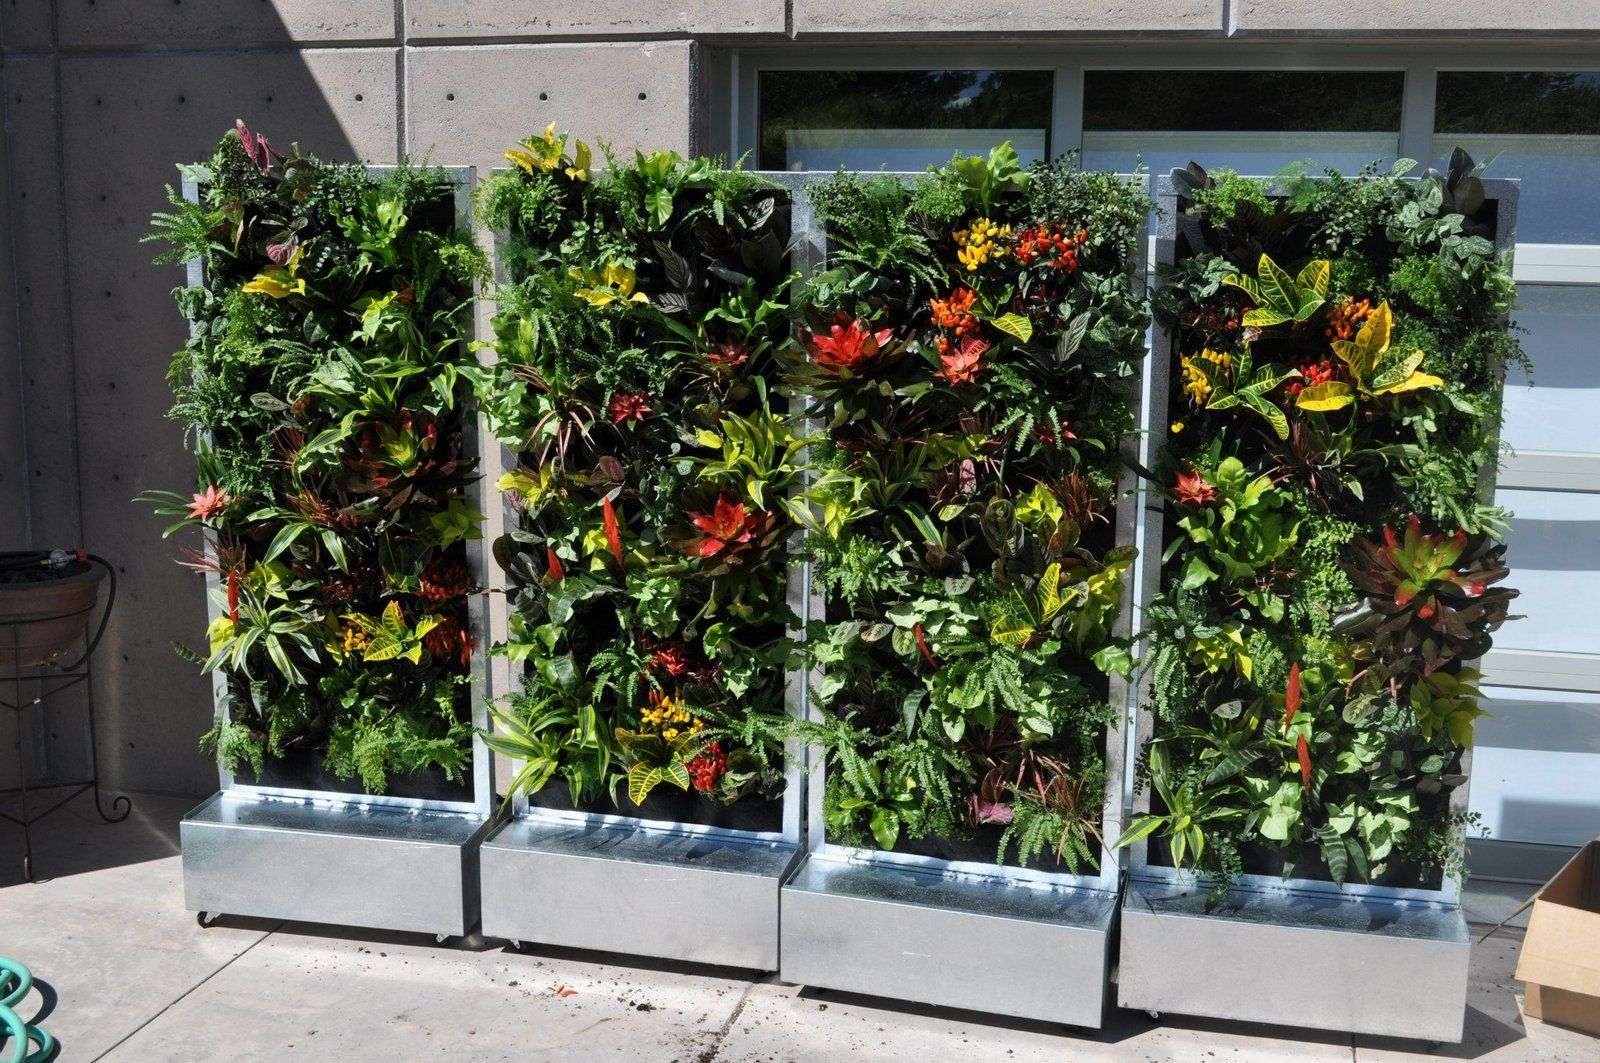 Plants On Walls Vertical Garden Systems: Conservation Garden Parku0027s Vertical  Garden On Wheels